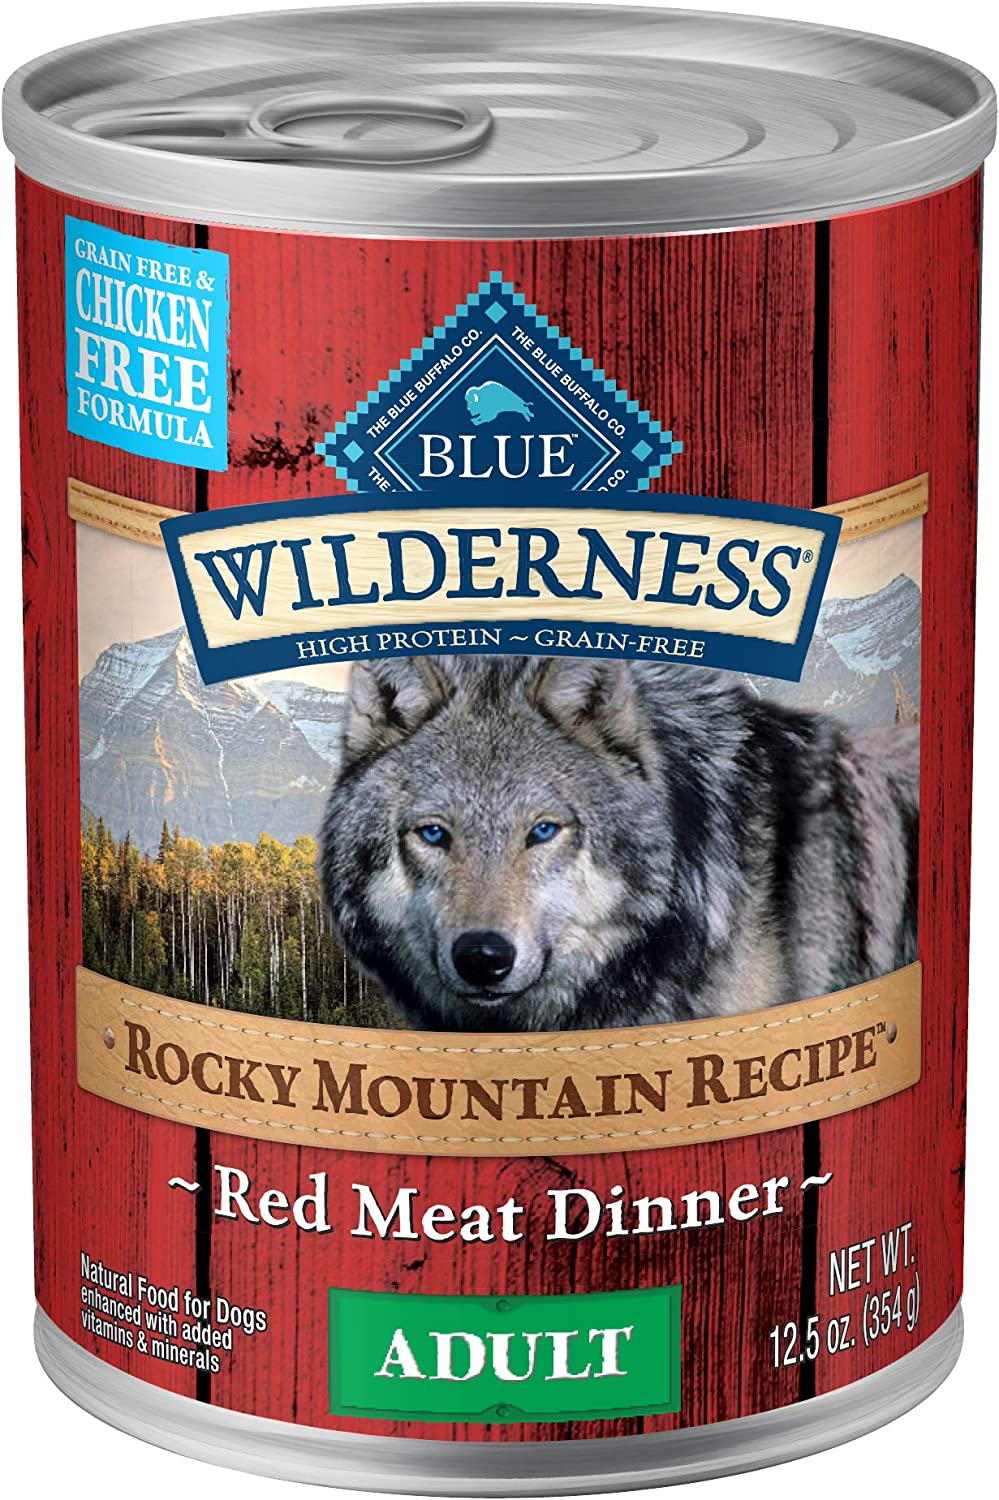 Blue Buffalo Wilderness Rocky Mountain Recipe High Protein Grain Free chicken free, Natural Adult Wet Dog Food, Red Meat 12.5-oz can pack of 12